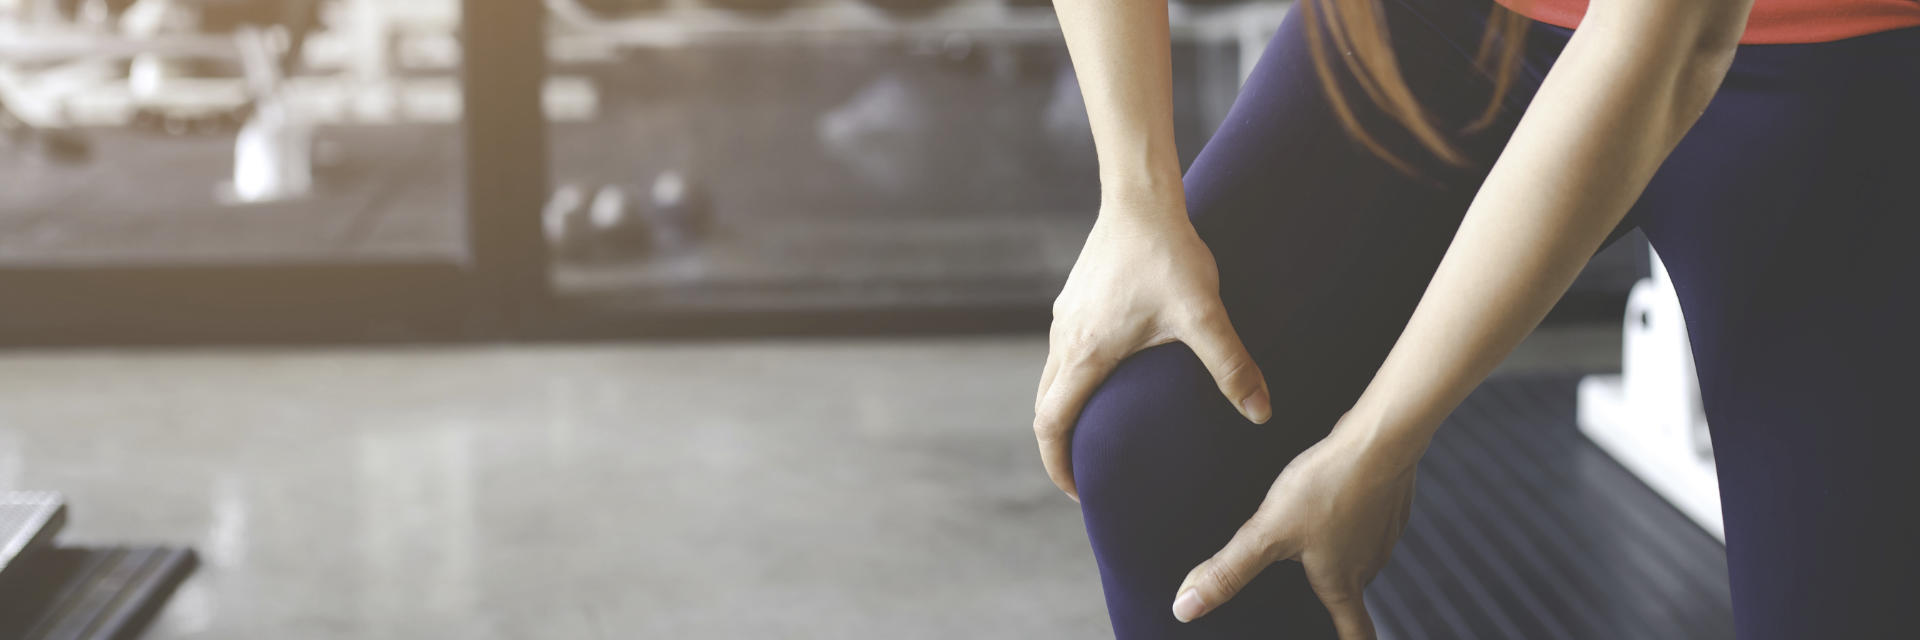 A woman holding her knee in pain due to injury she experienced while working out at the gym.